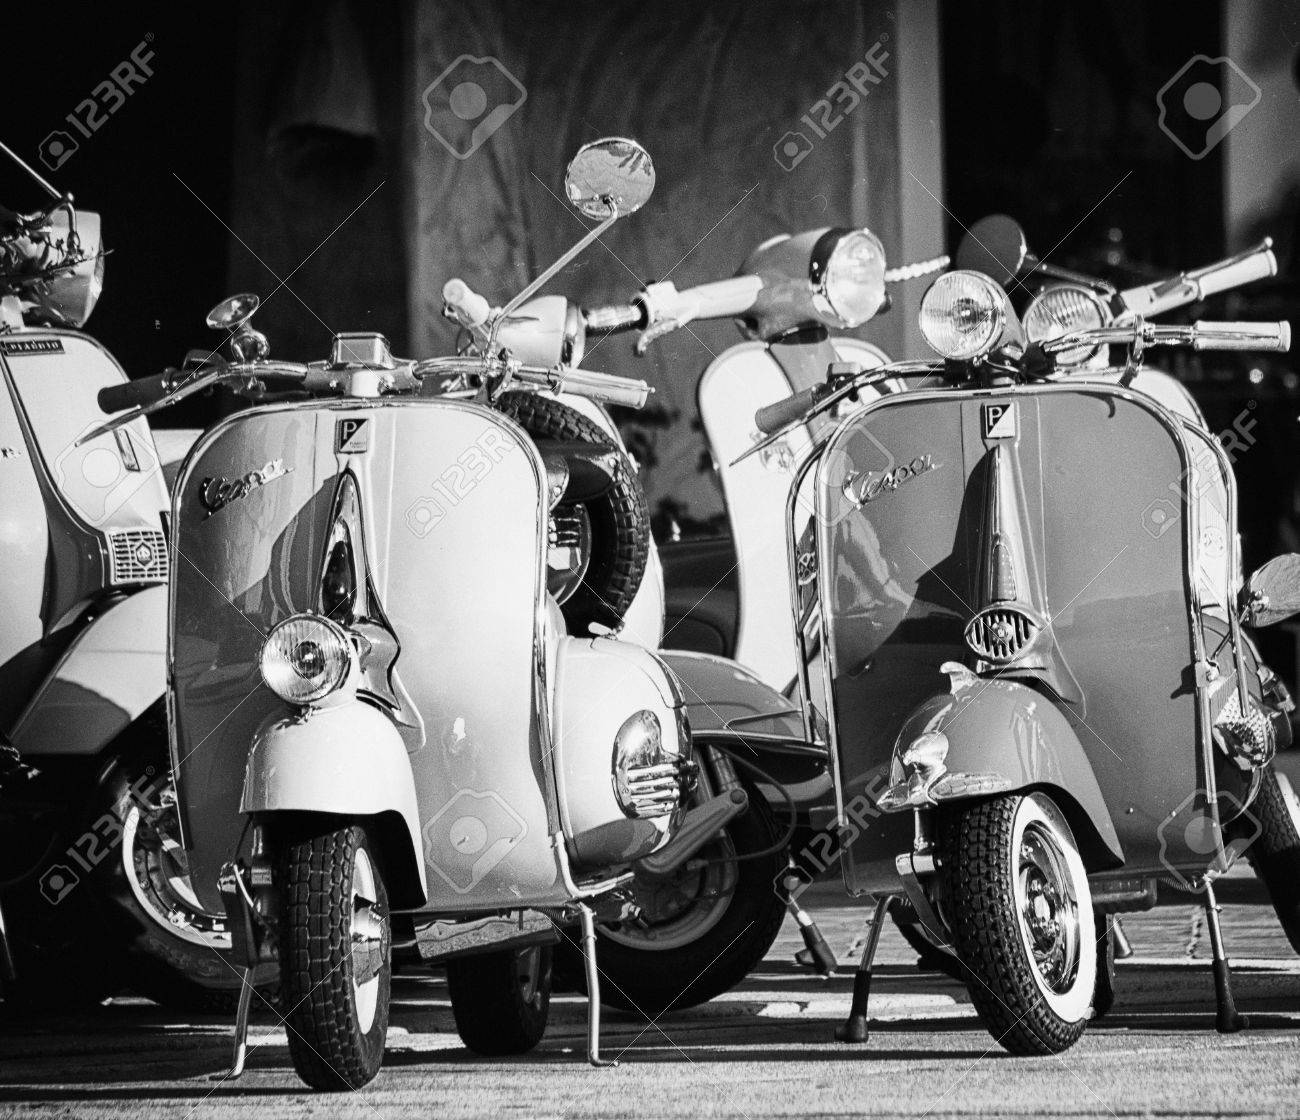 Vintage Vespa Scooter, iconic symbol of Italy, manufactured by